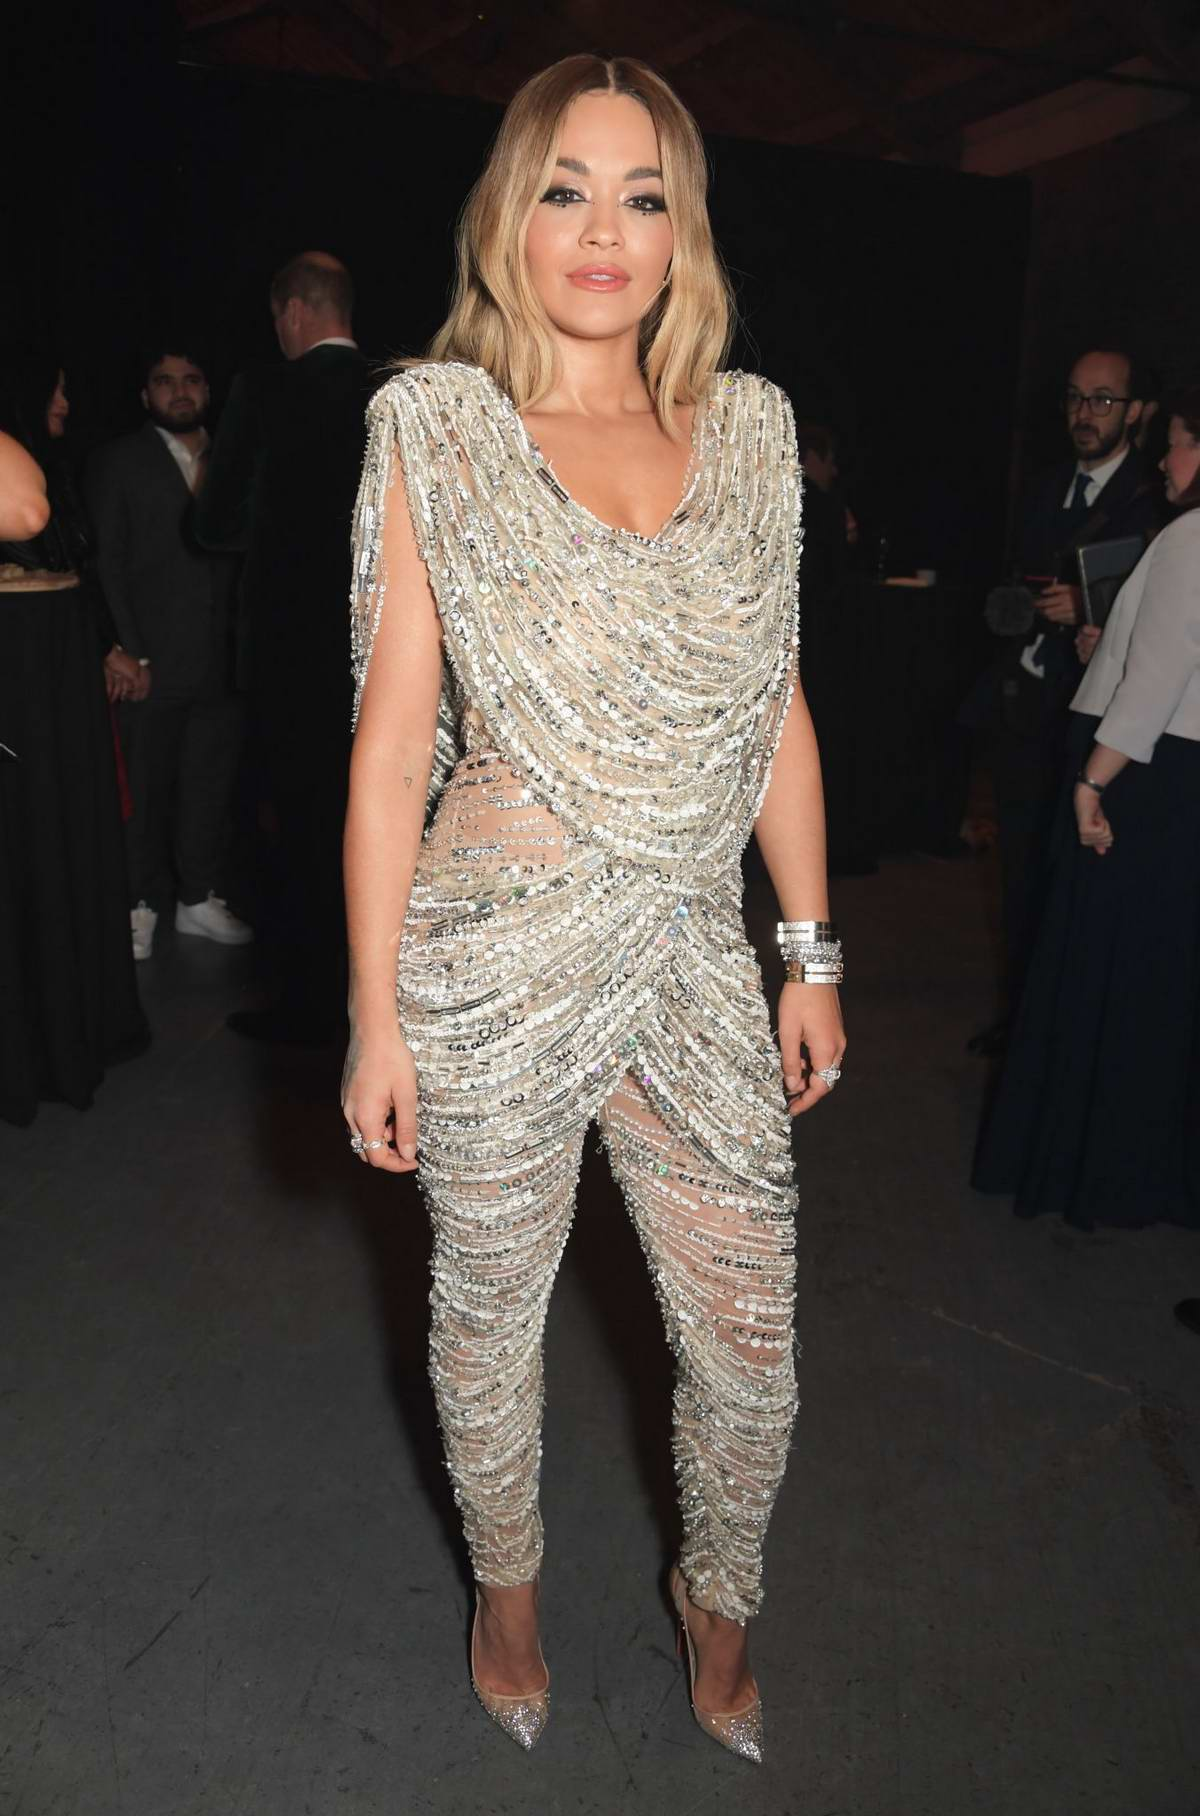 Rita Ora attends Centrepoint 50th Anniversary Gala at The Camden Roundhouse in London, UK